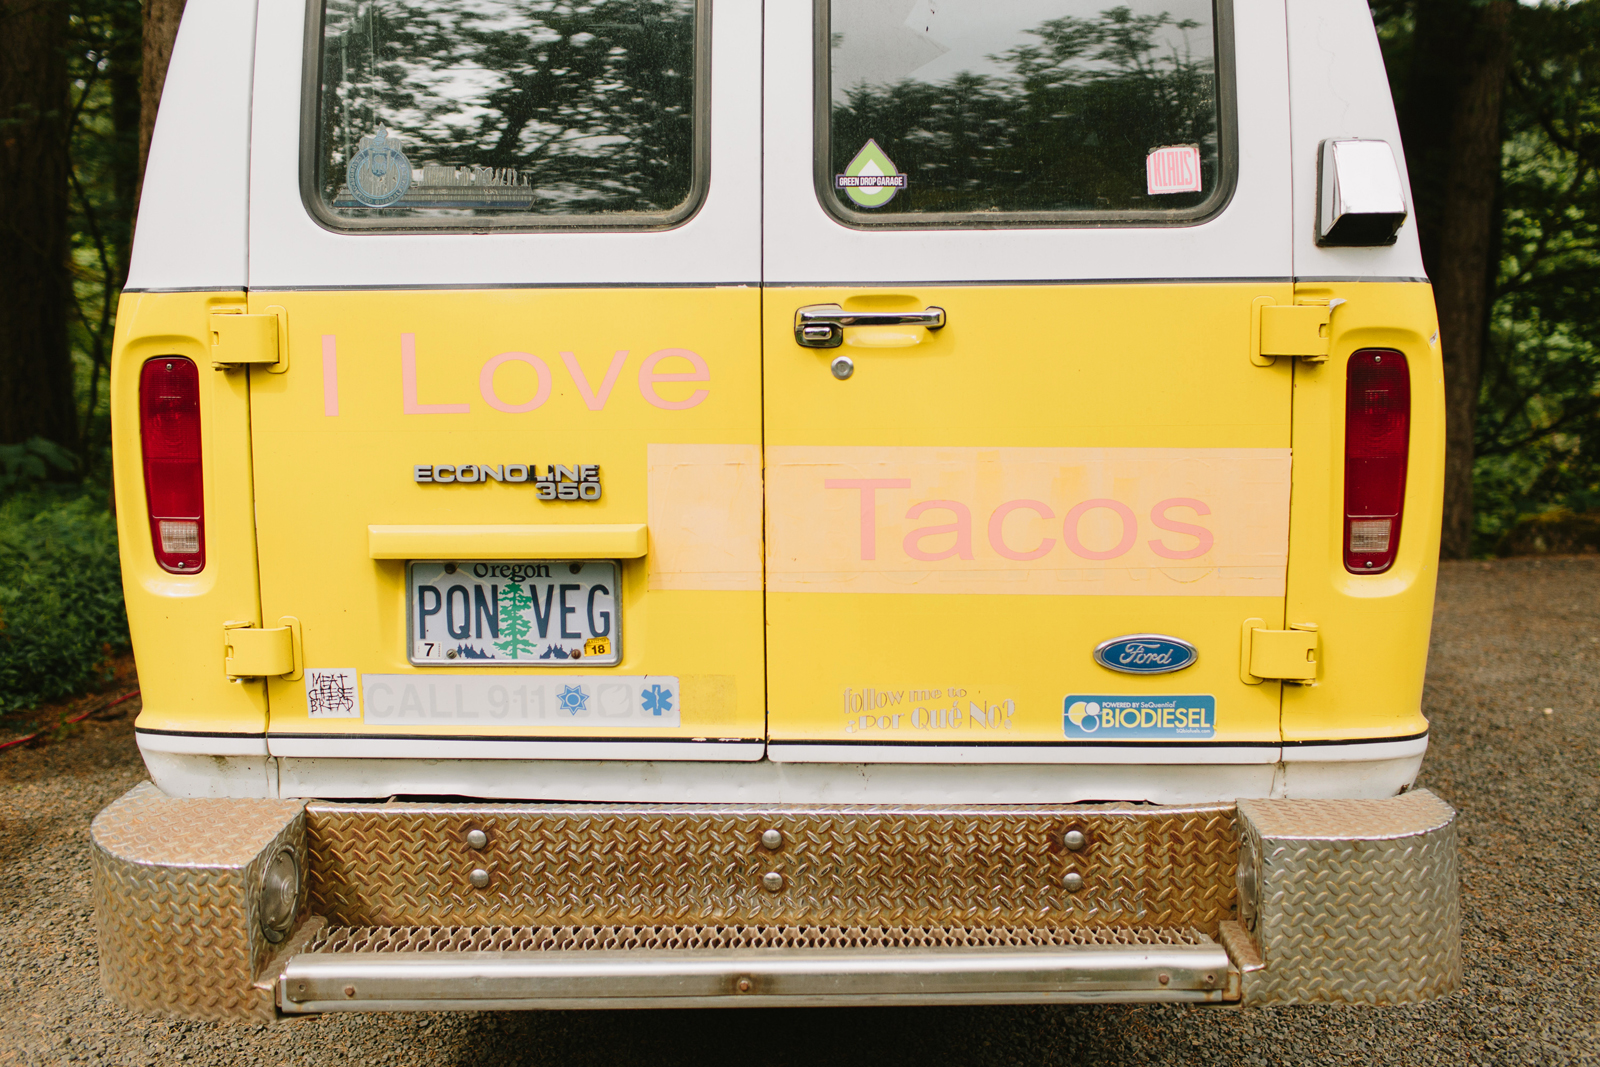 The Por Que No taco van at Bridal Veil Lakes in Corbett